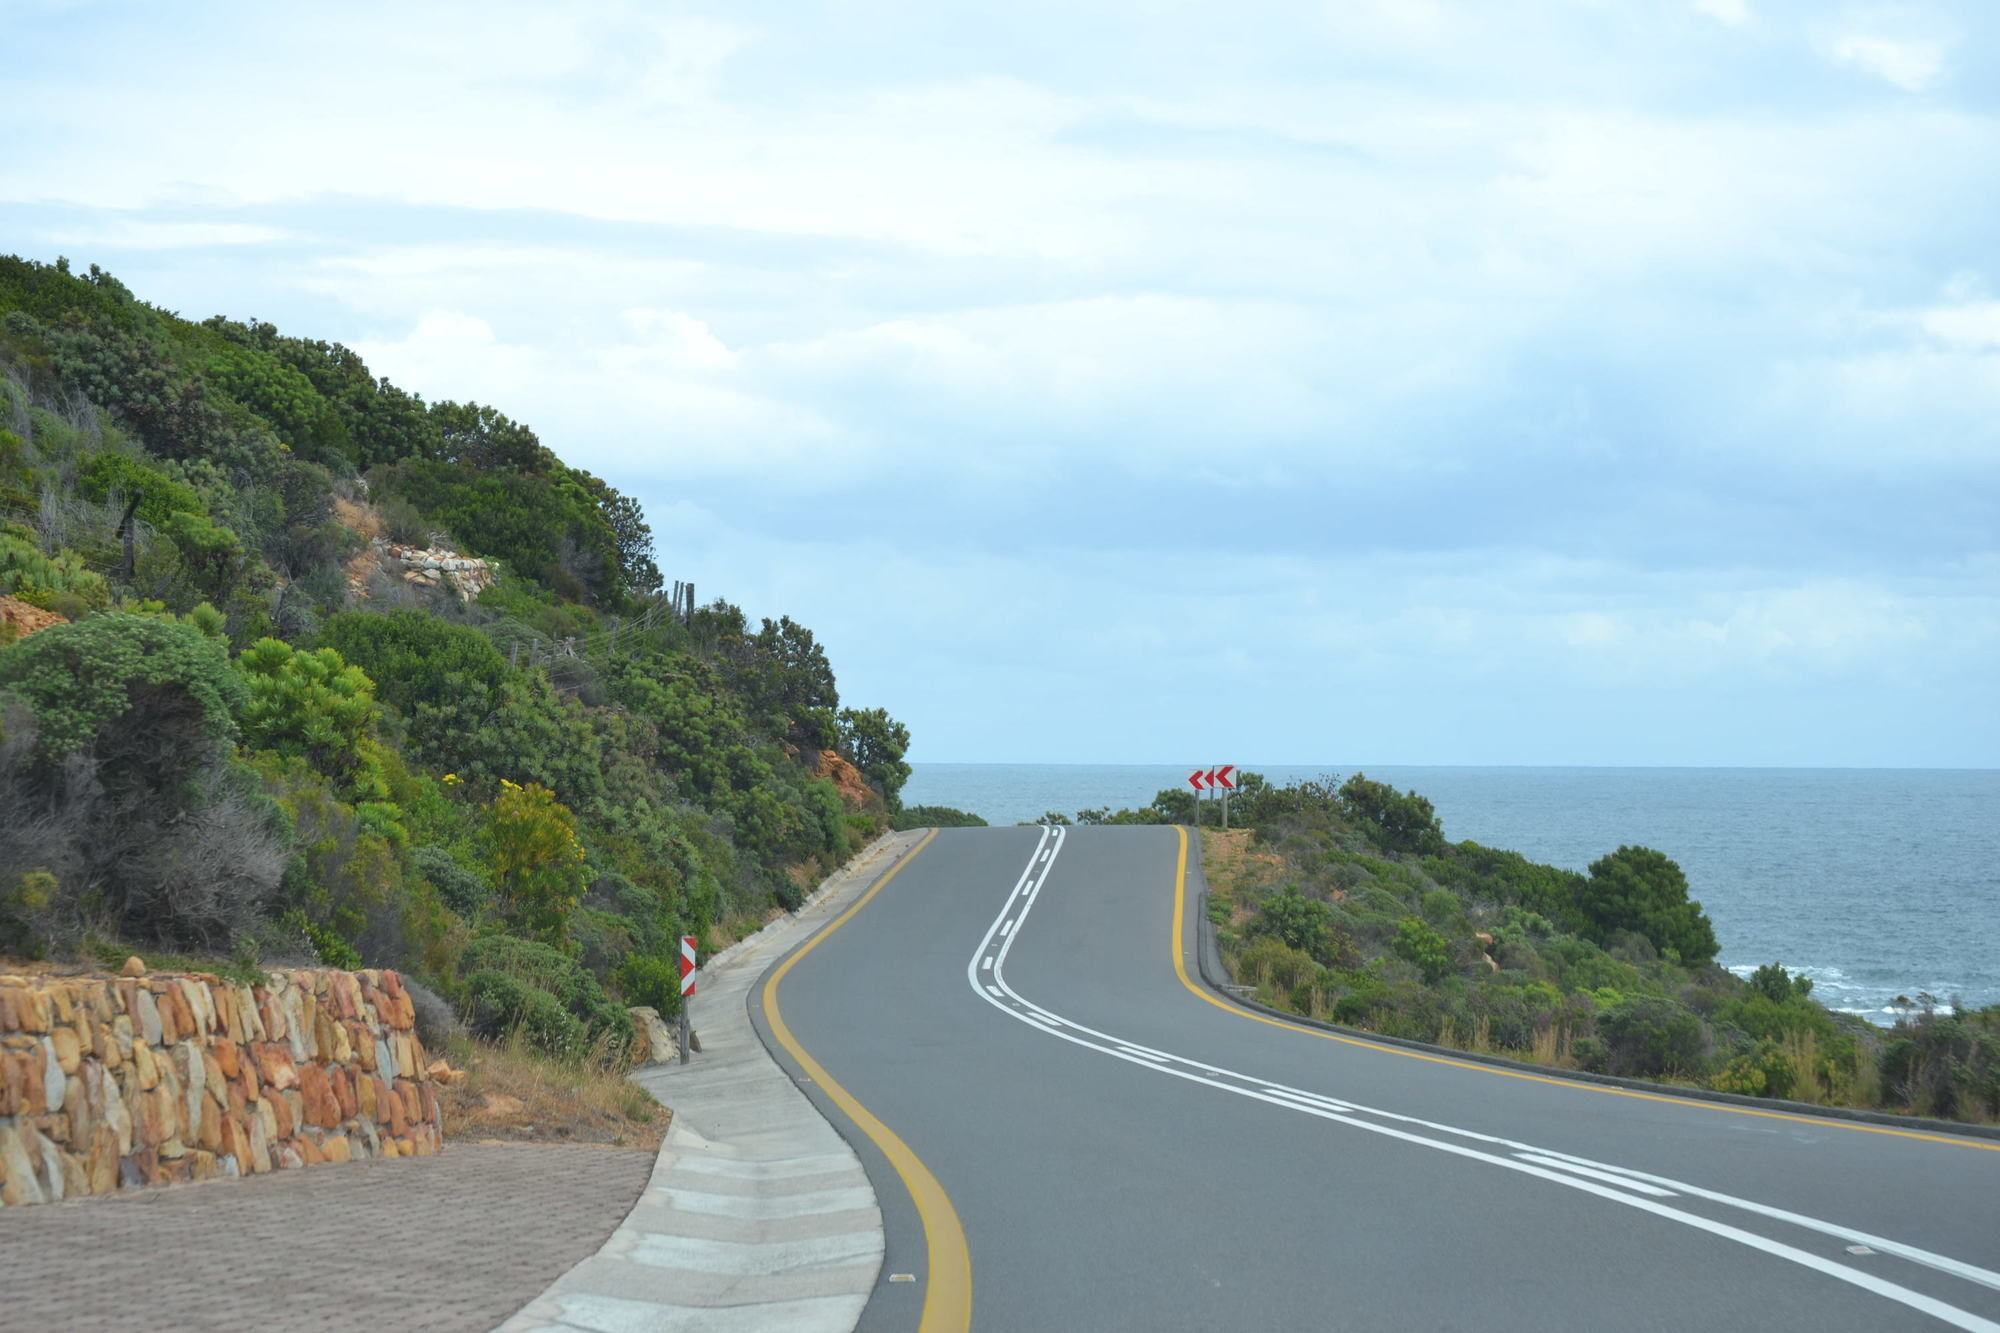 Road beside the sea